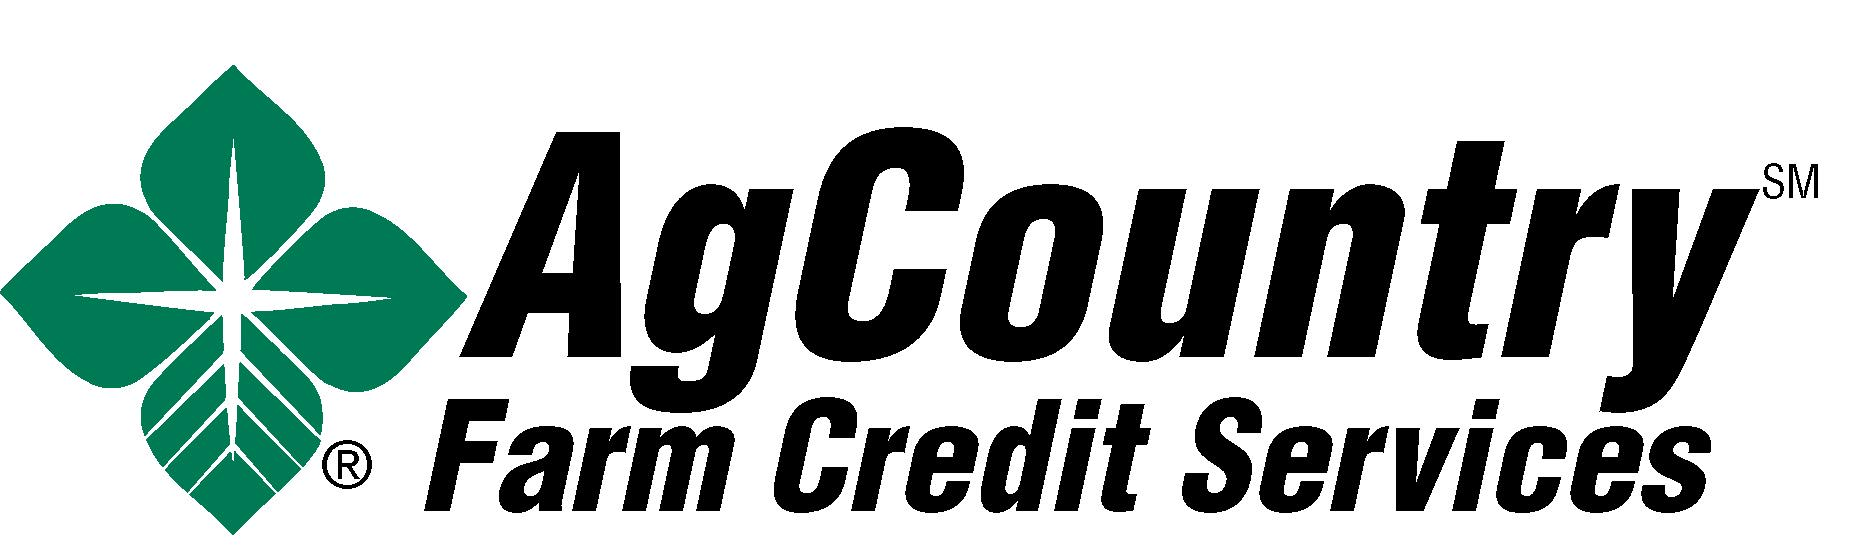 AgCountry Farm Credit Service Slide Image